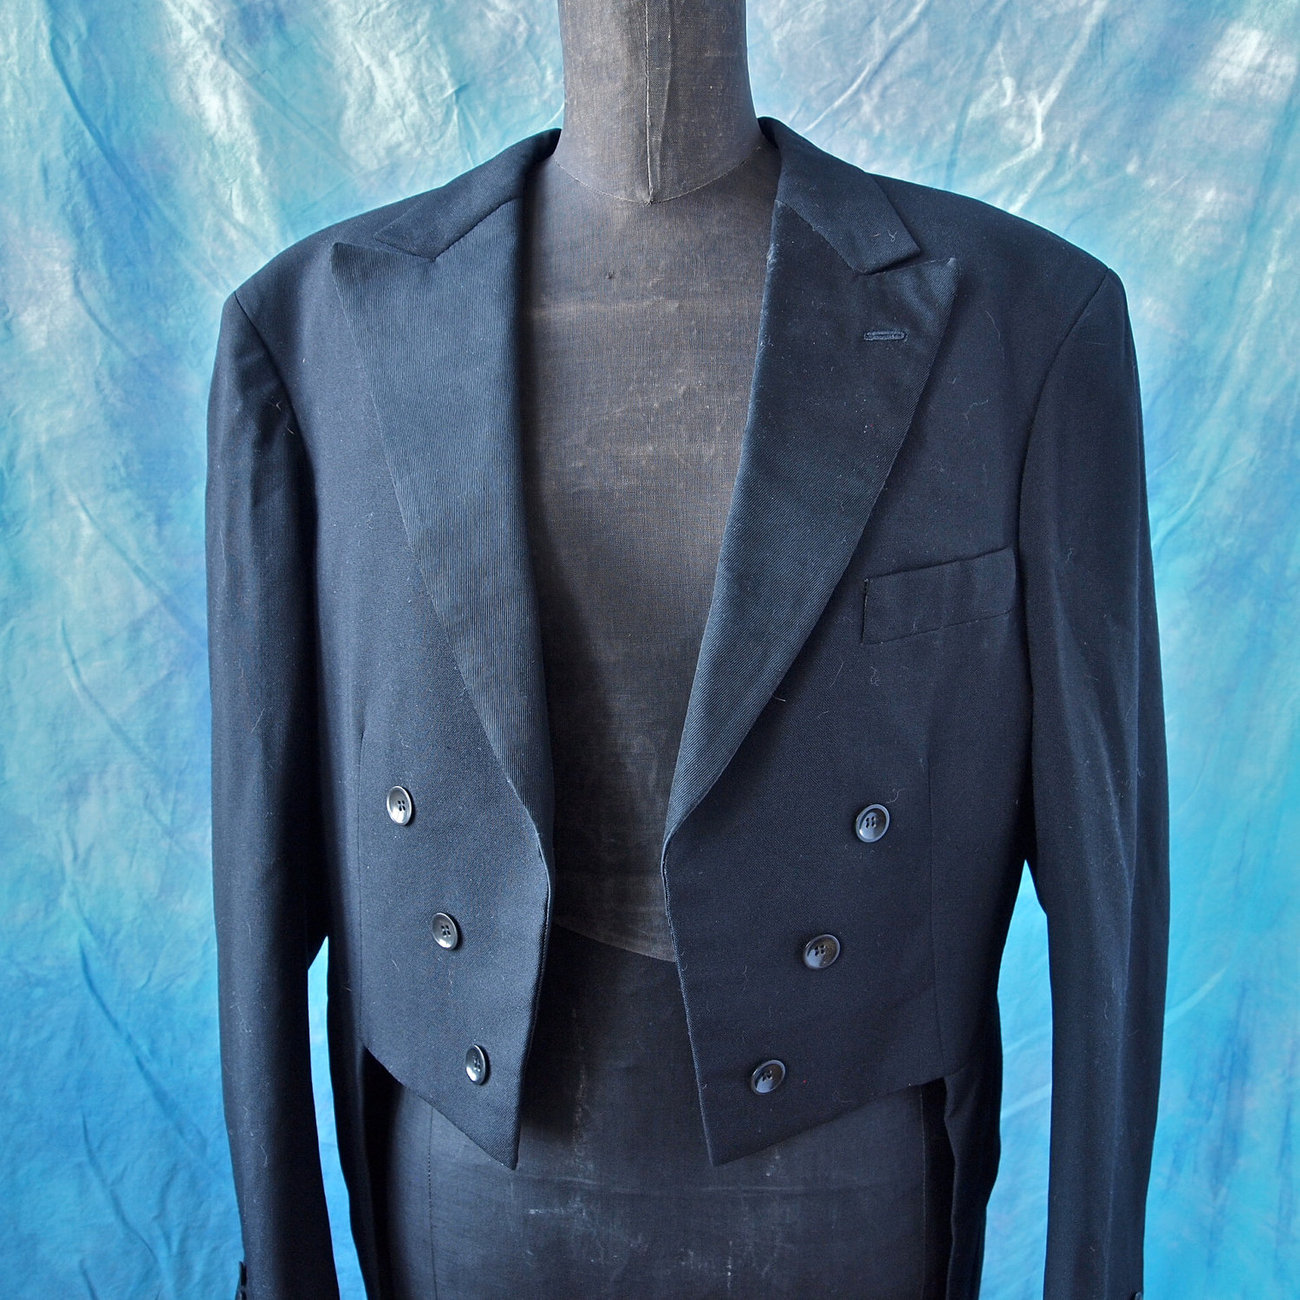 Gerhard Skusa Amazing 30's Black Tails Wedding Tuxedo Jacket Vienna, Art Deco